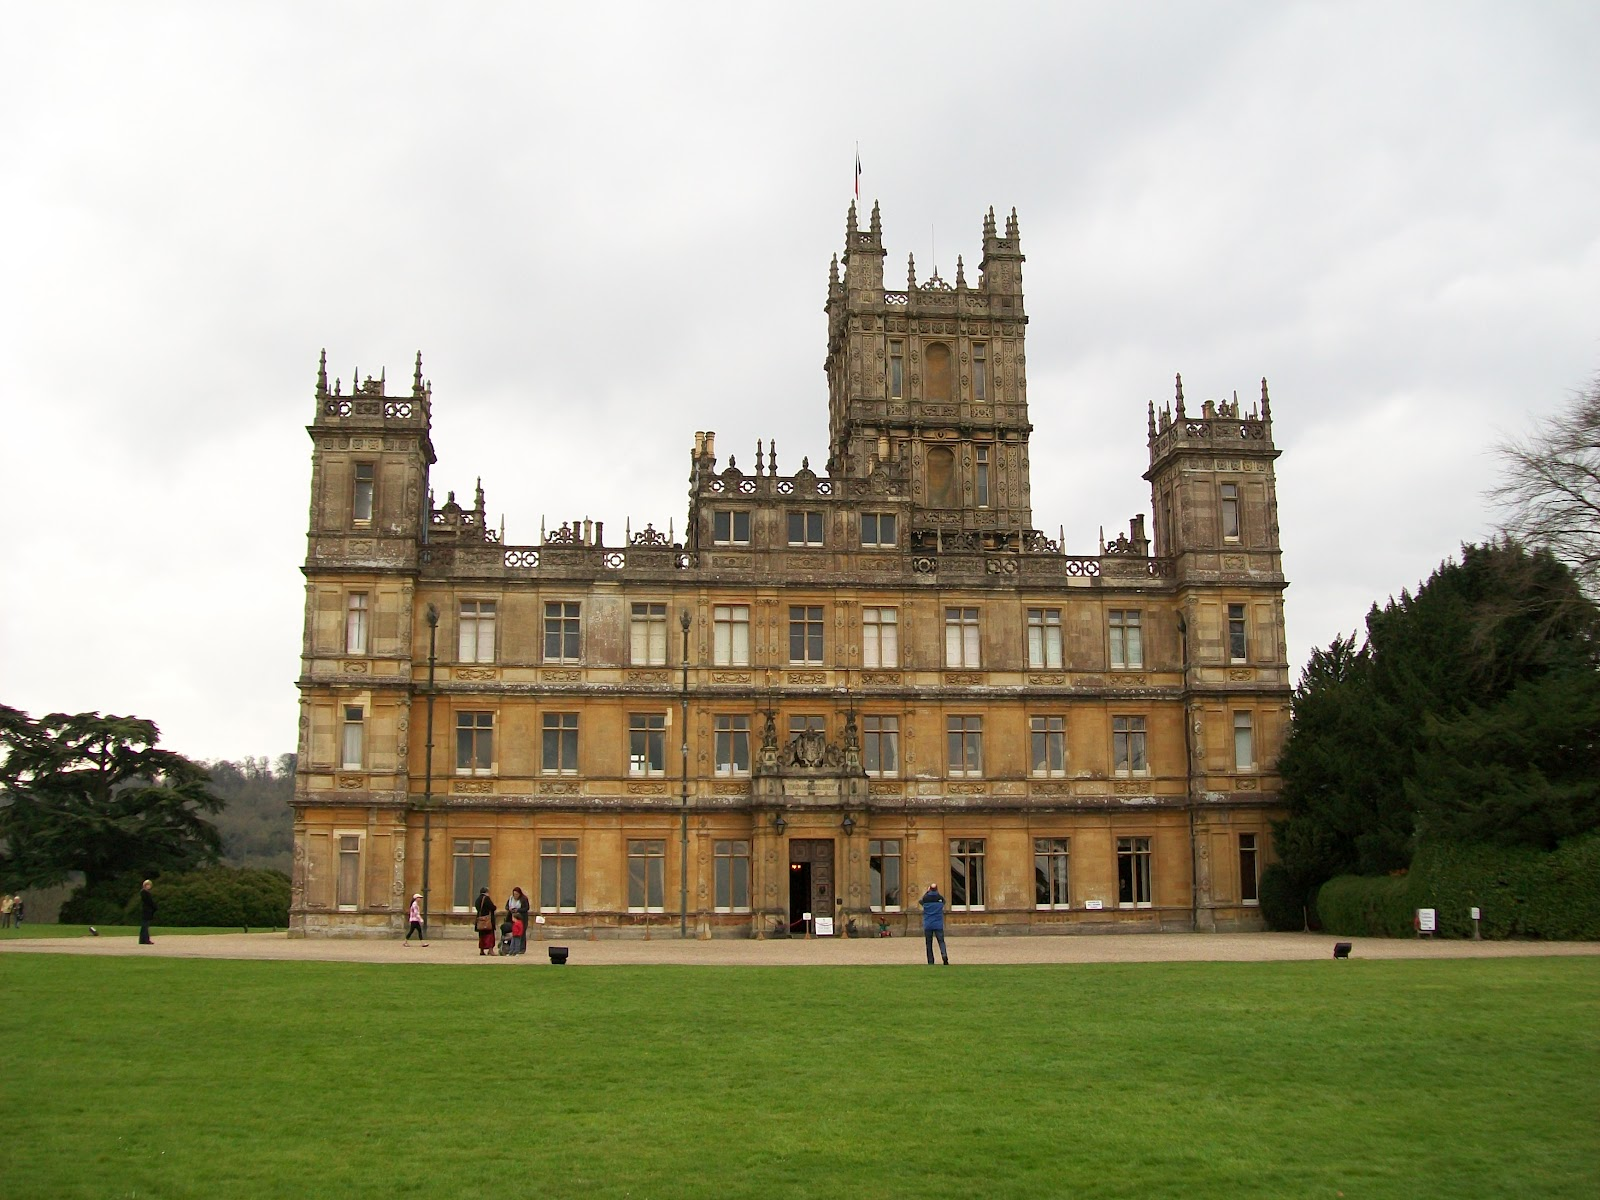 F0188 - Chateau de downton abbey ...